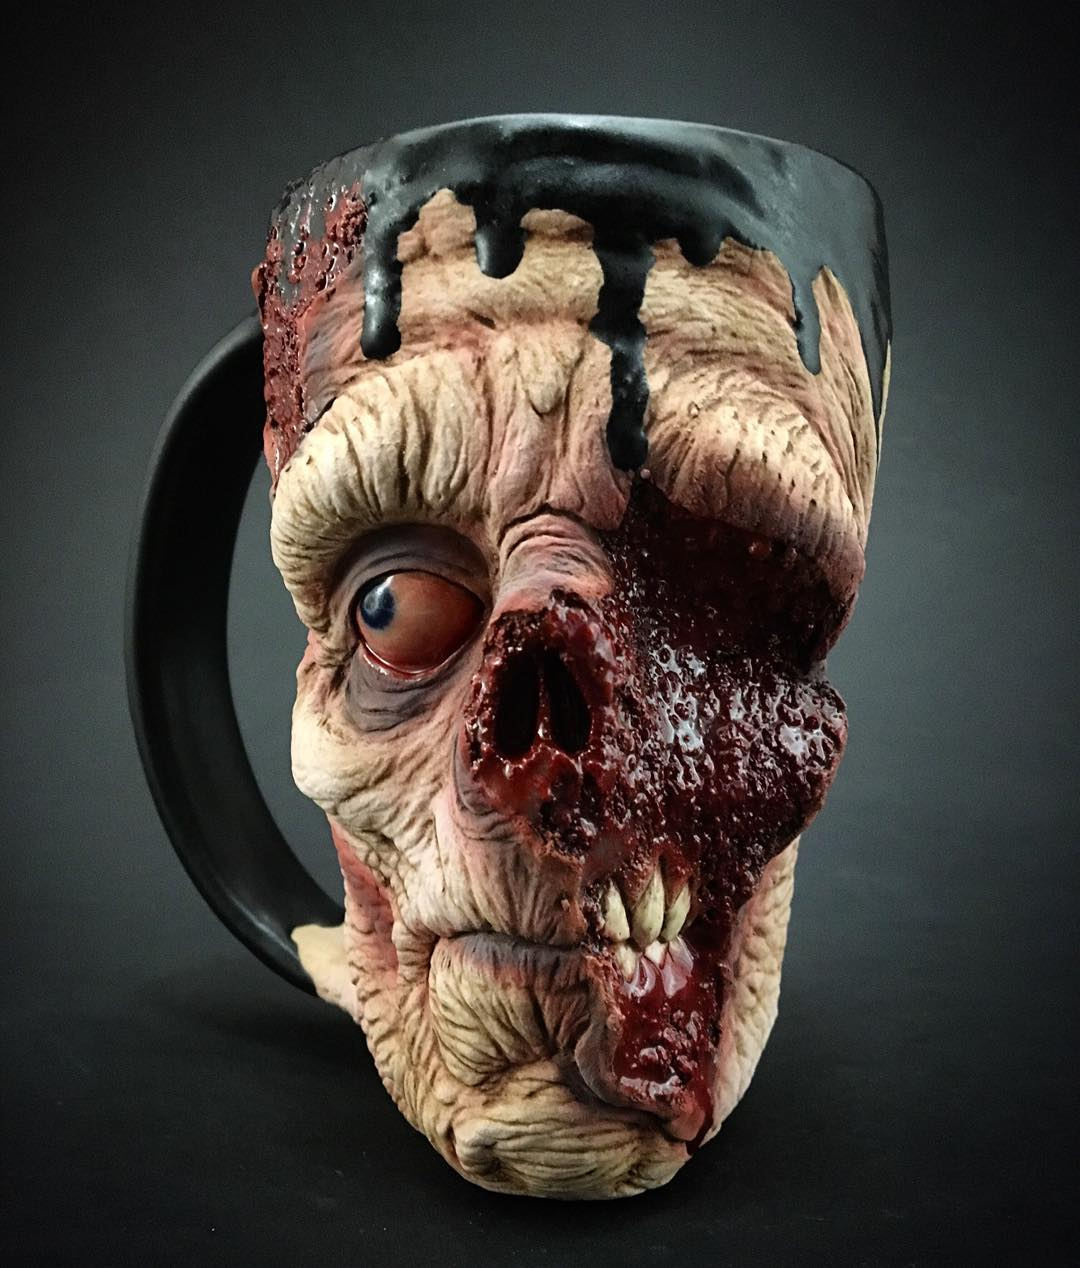 horror-zombie-mug-pottery-slow-joe-kevin-turkey-merck-2